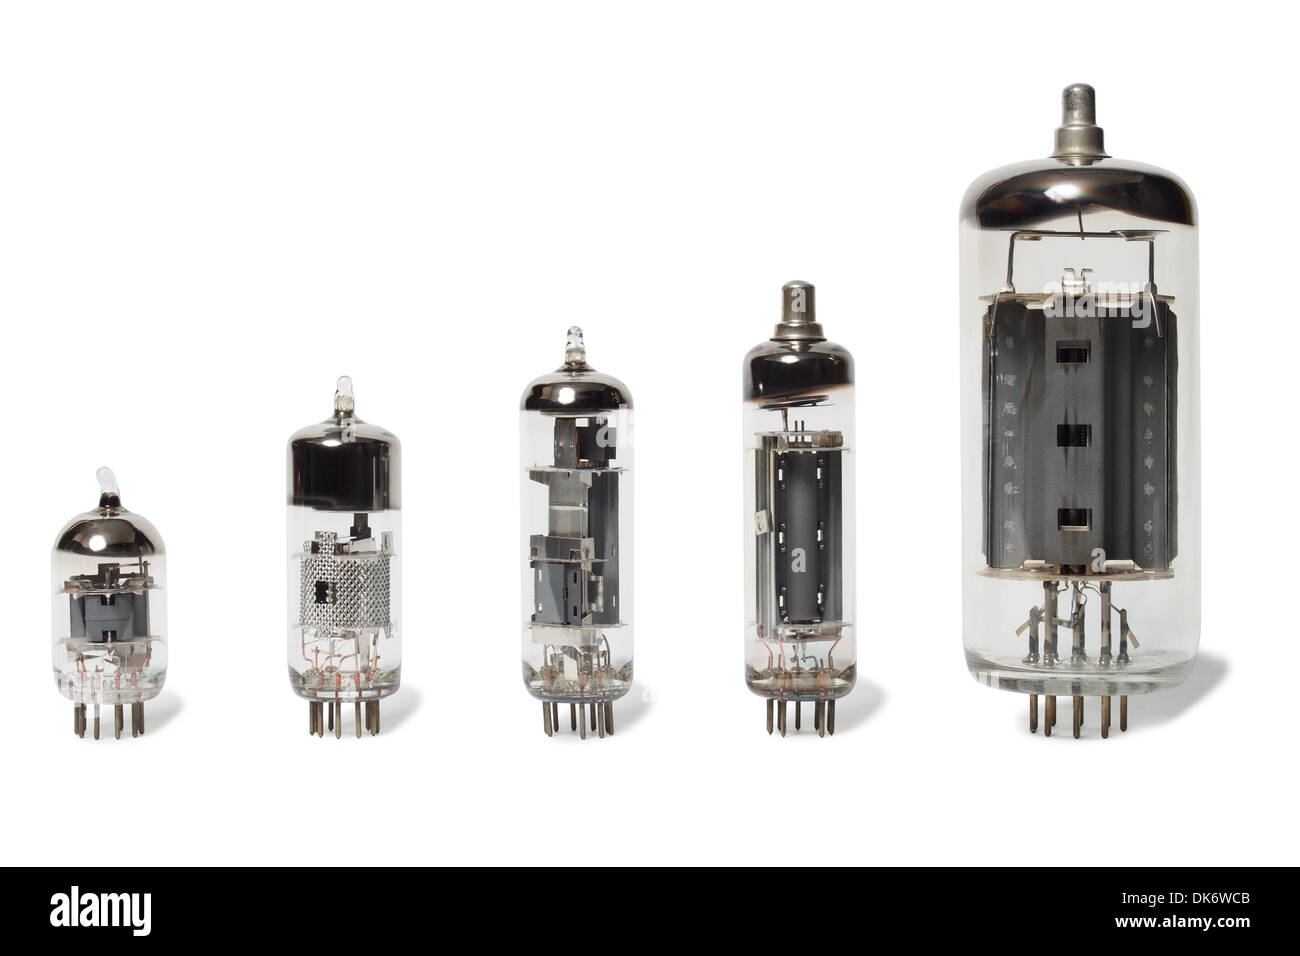 Thermionic Diode Stock Photos Images Alamy Vacuum Tube Diodes Tubes